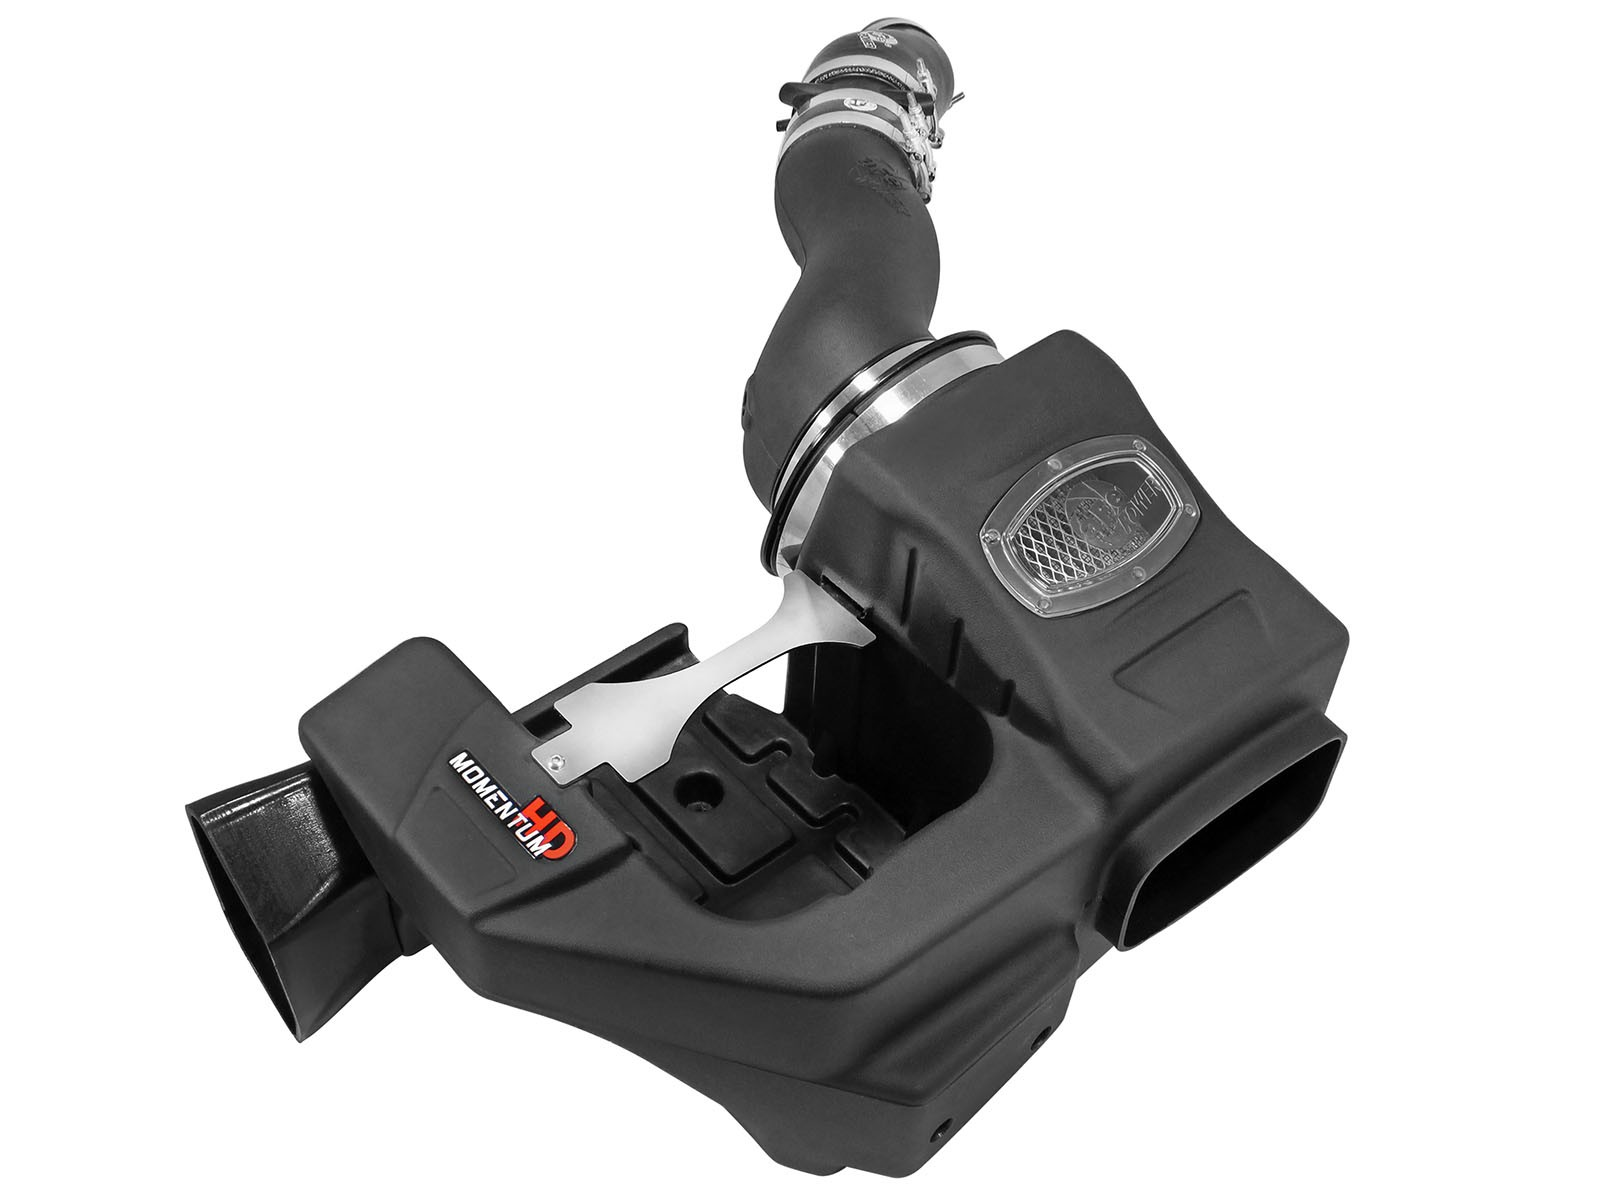 aFe POWER 51-73002 Momentum HD Pro DRY S Cold Air Intake System